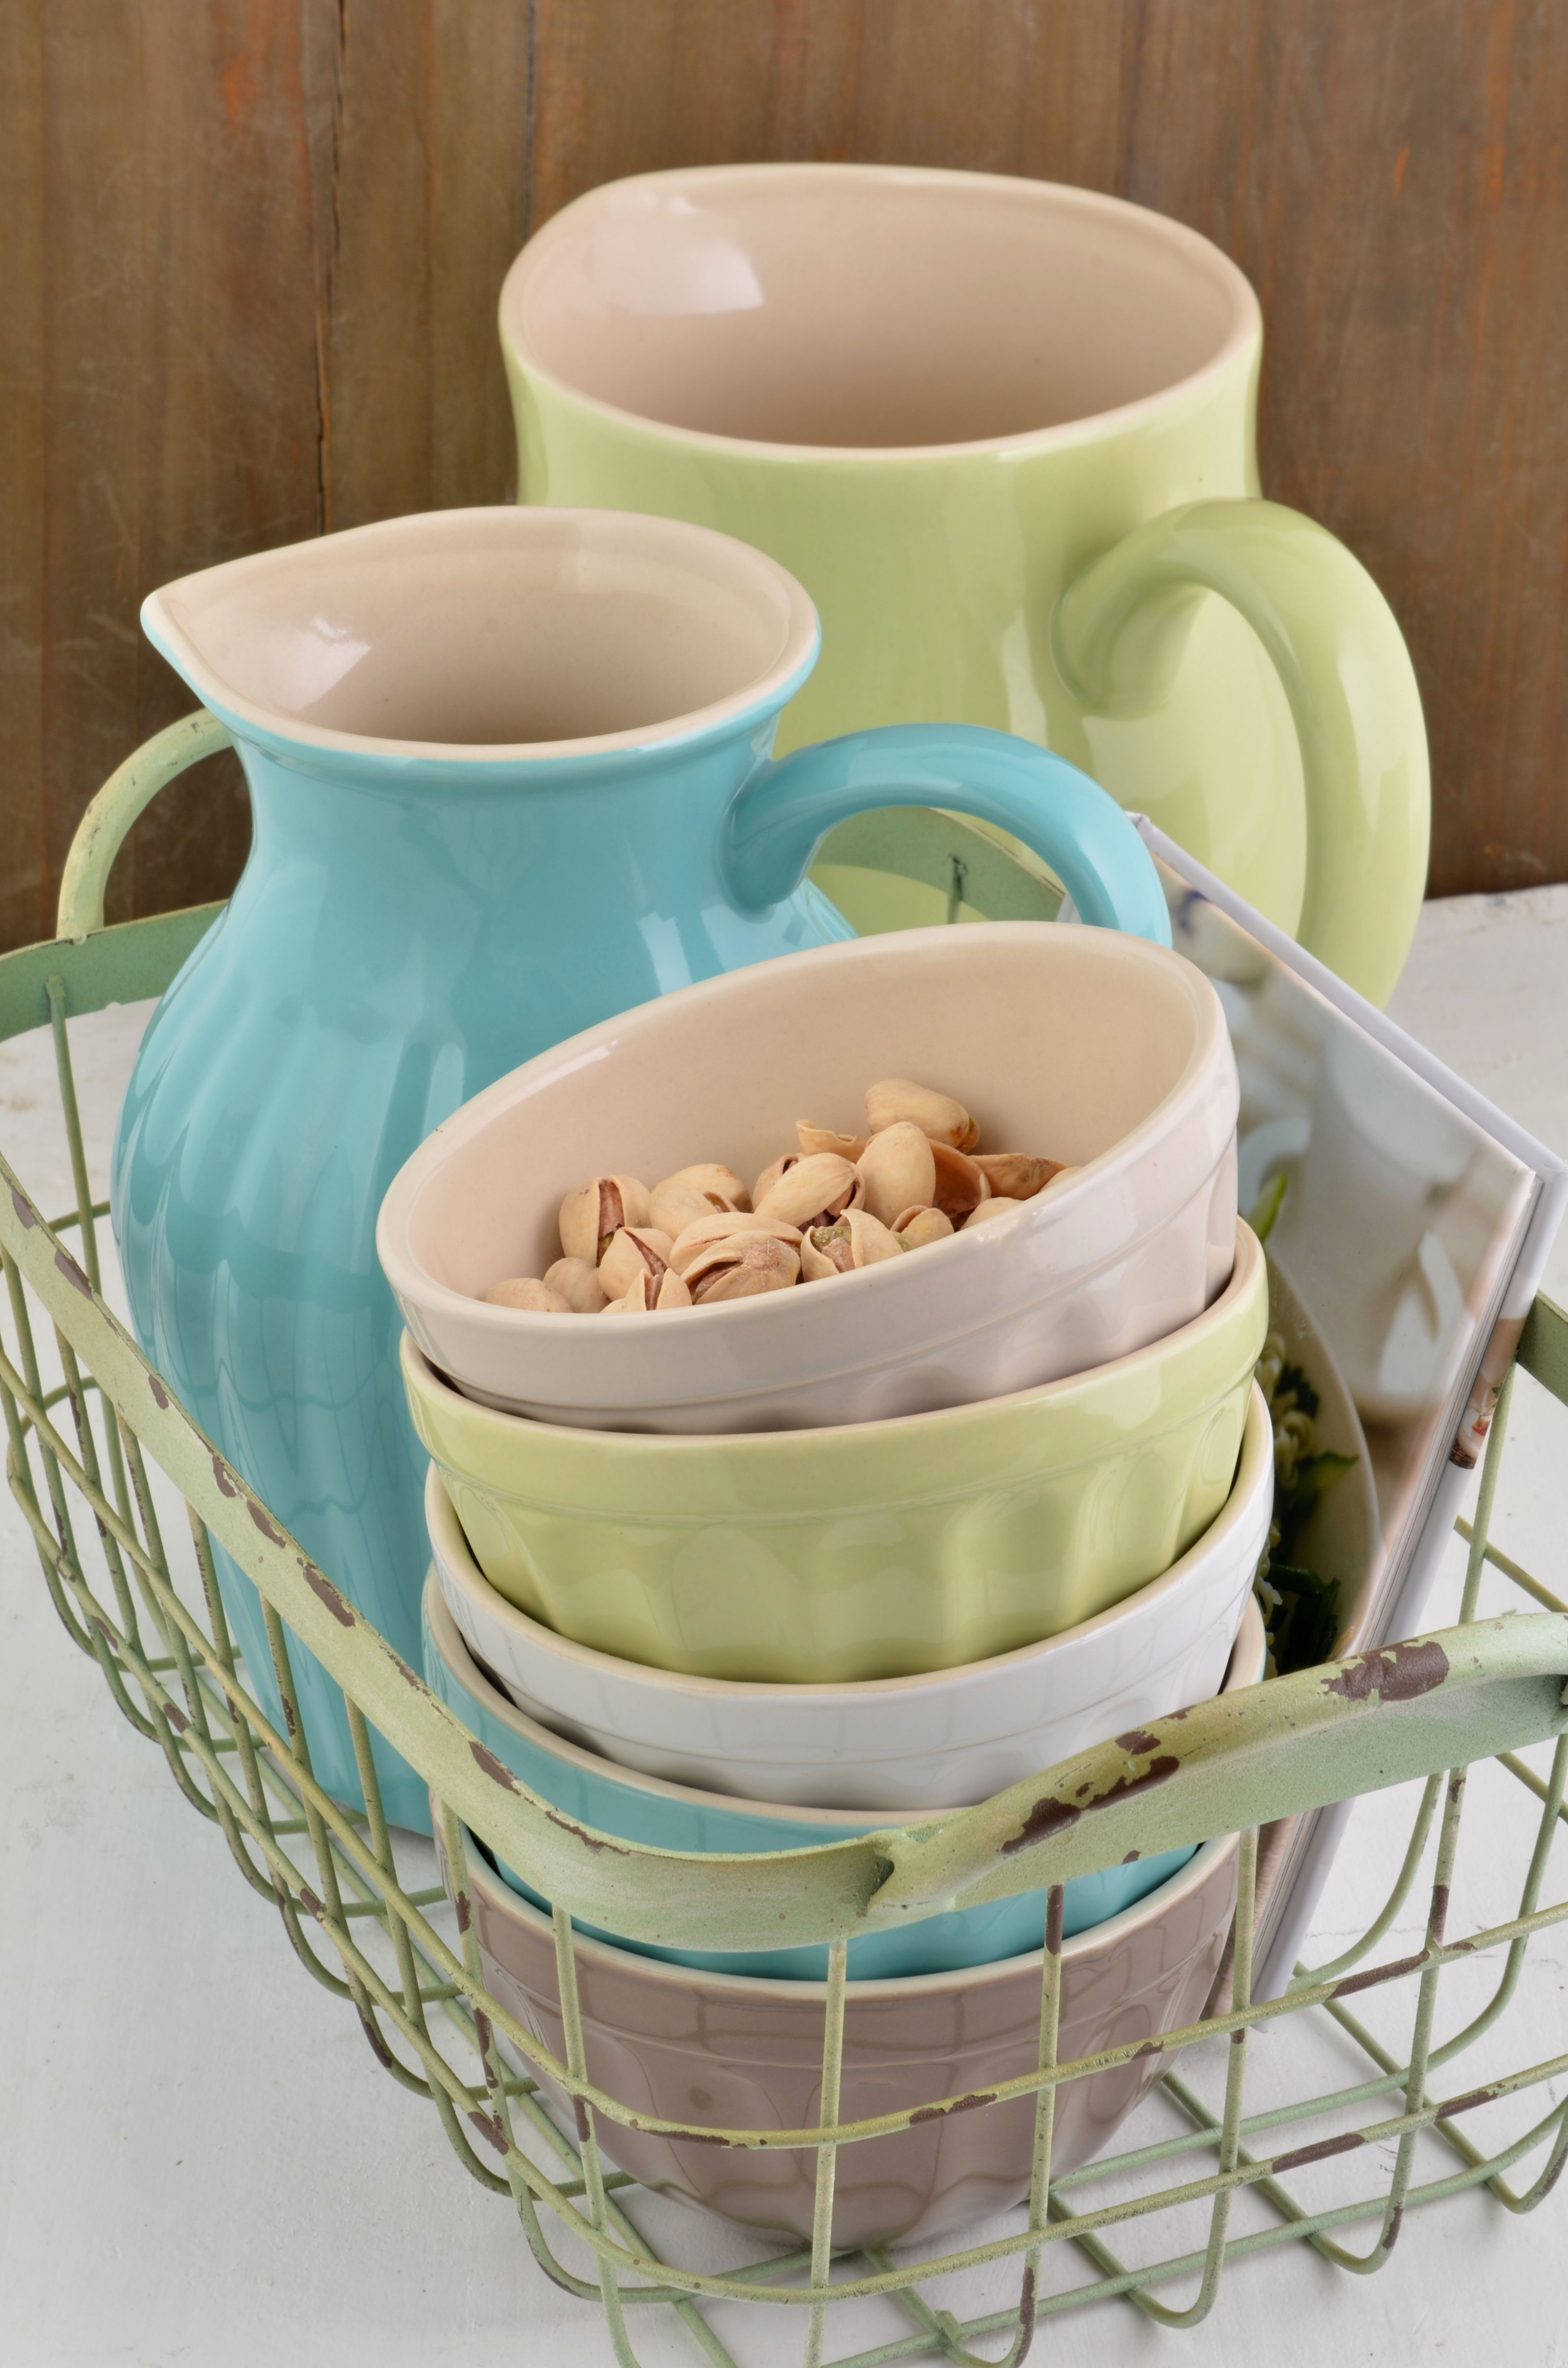 Mynte stoneware by Ib Laursen Müsli bowls and pitchers in Cafe